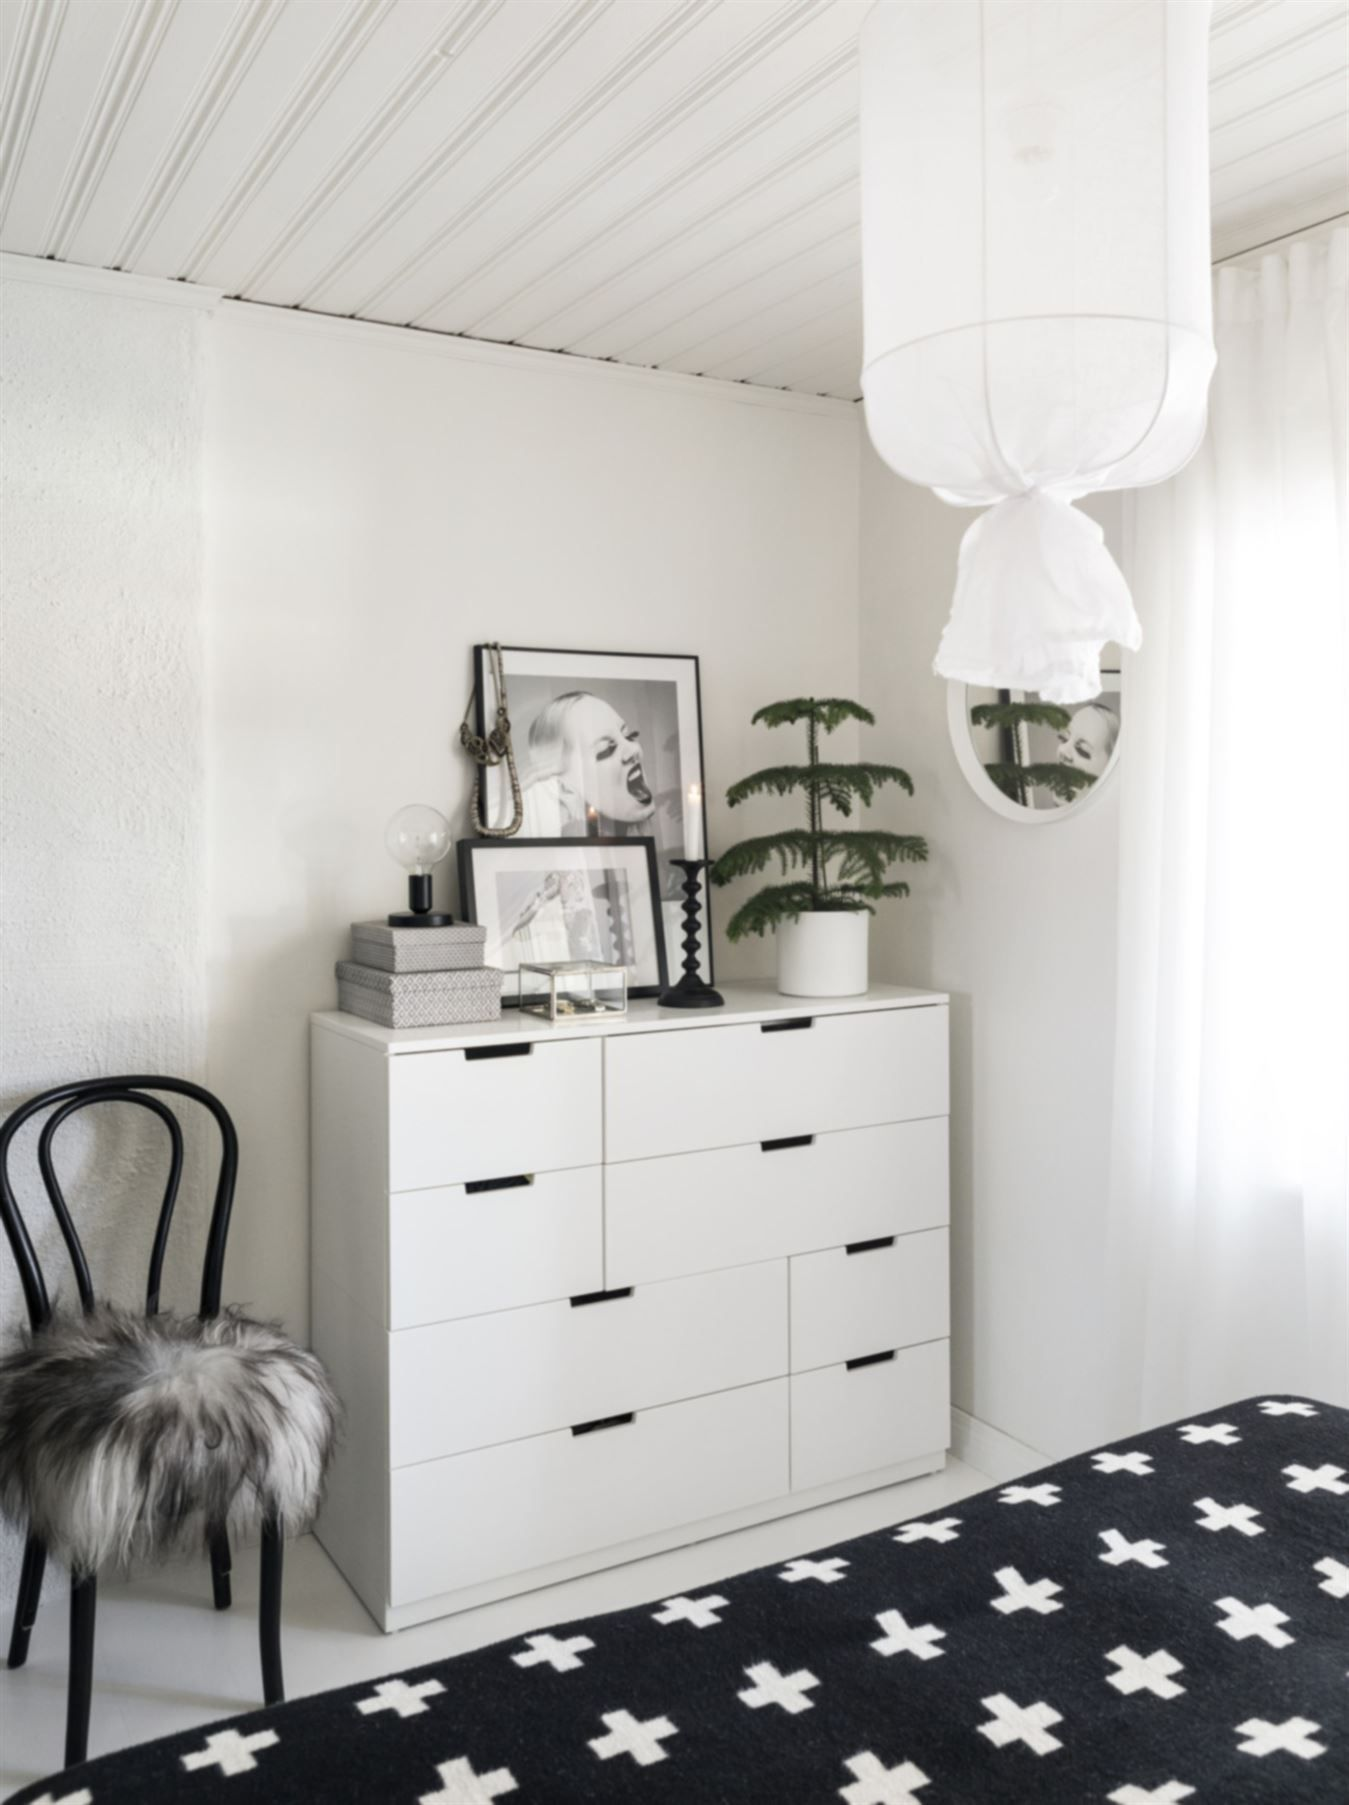 ikea 39 nordli 39 dresser in bedroom h o m e pinterest skandinavisch wohnen wg zimmer und. Black Bedroom Furniture Sets. Home Design Ideas